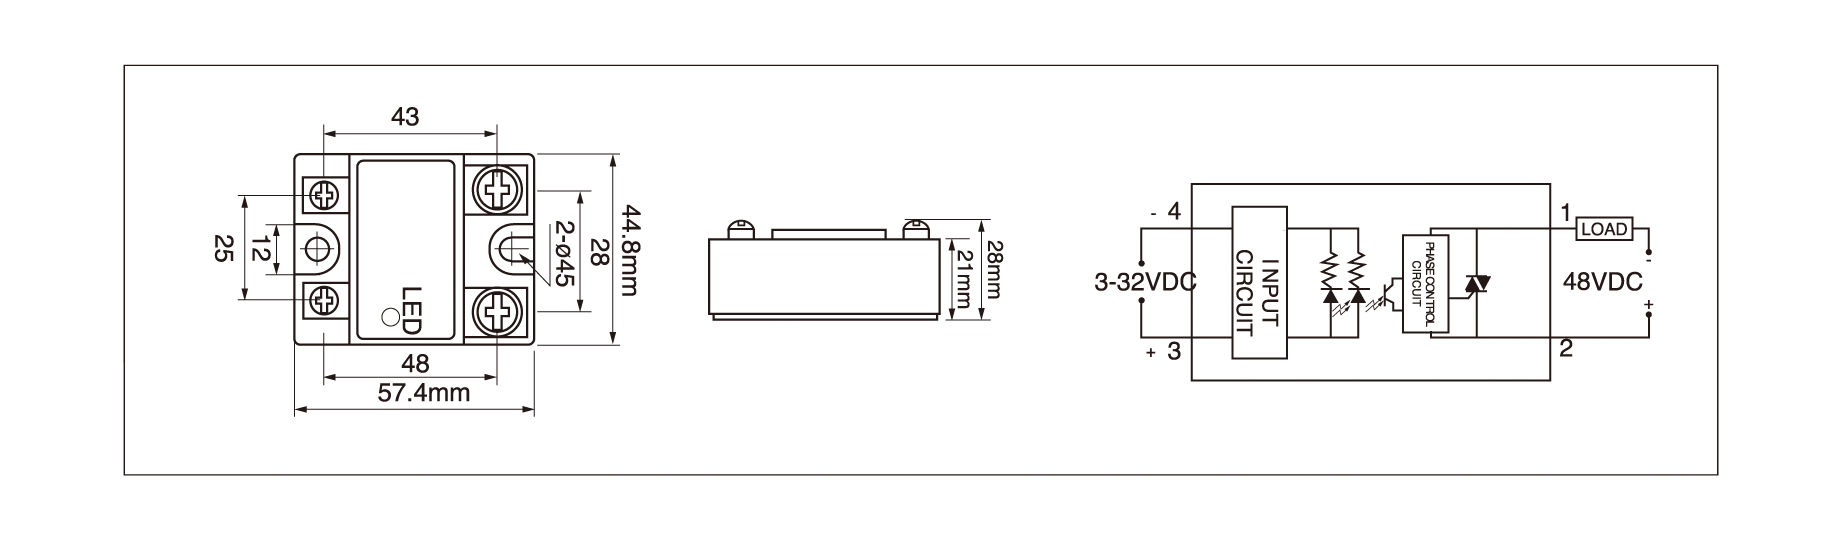 DC solid state relay dimensions, DC solid state relay circuit diagram and DC solid state relay wiring diagram of the MGR1DD series DC to DC solid state relay